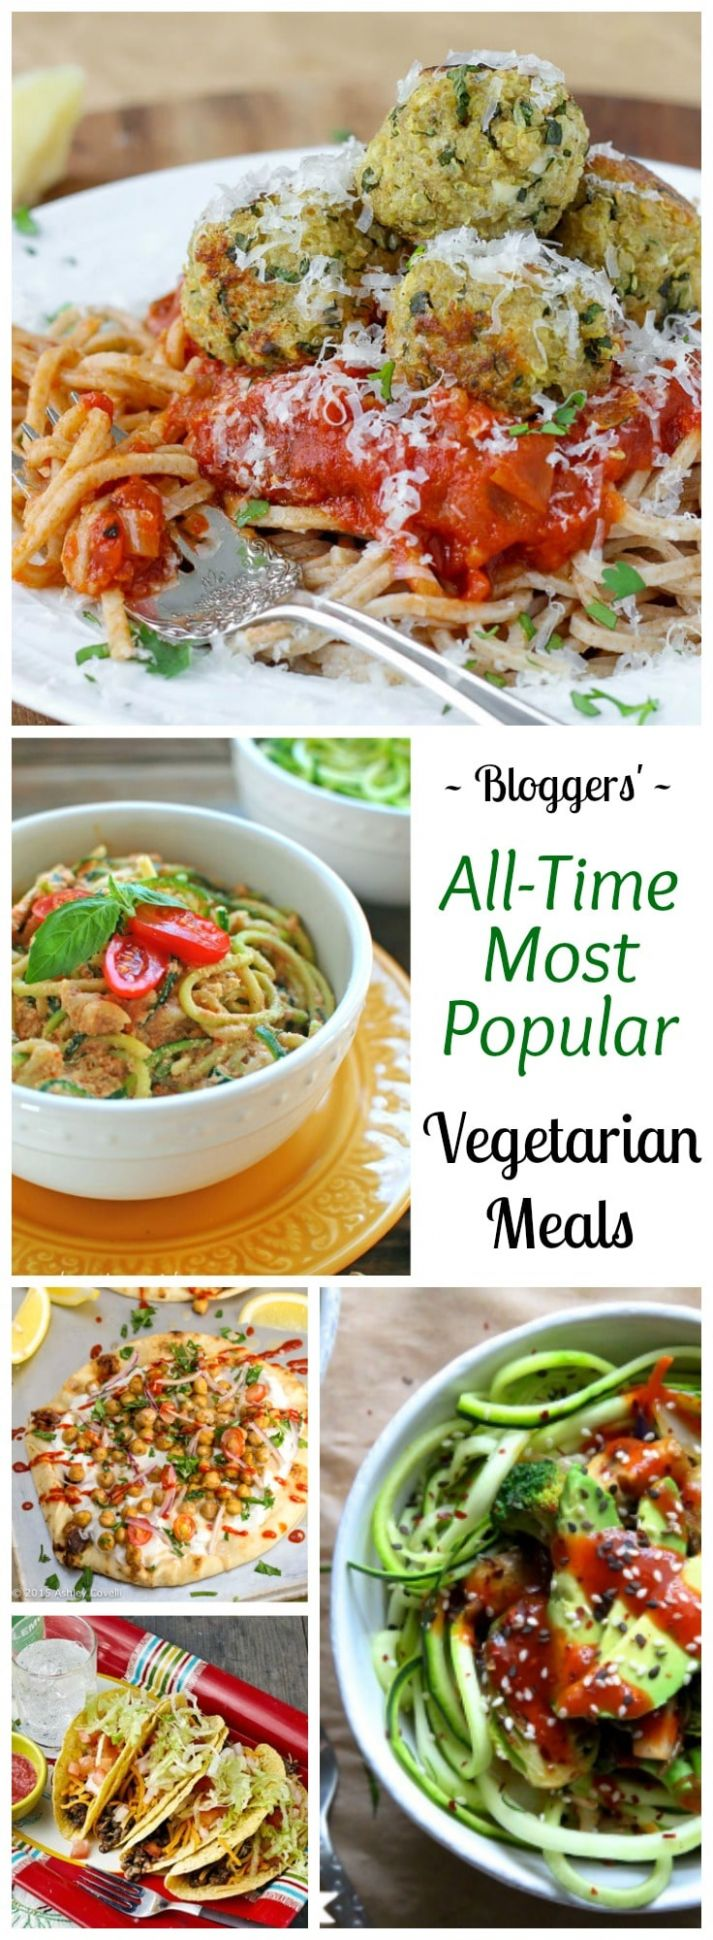 11 All-Time Best Healthy Vegetarian Meals - Two Healthy Kitchens - Healthy Recipes Vegetables